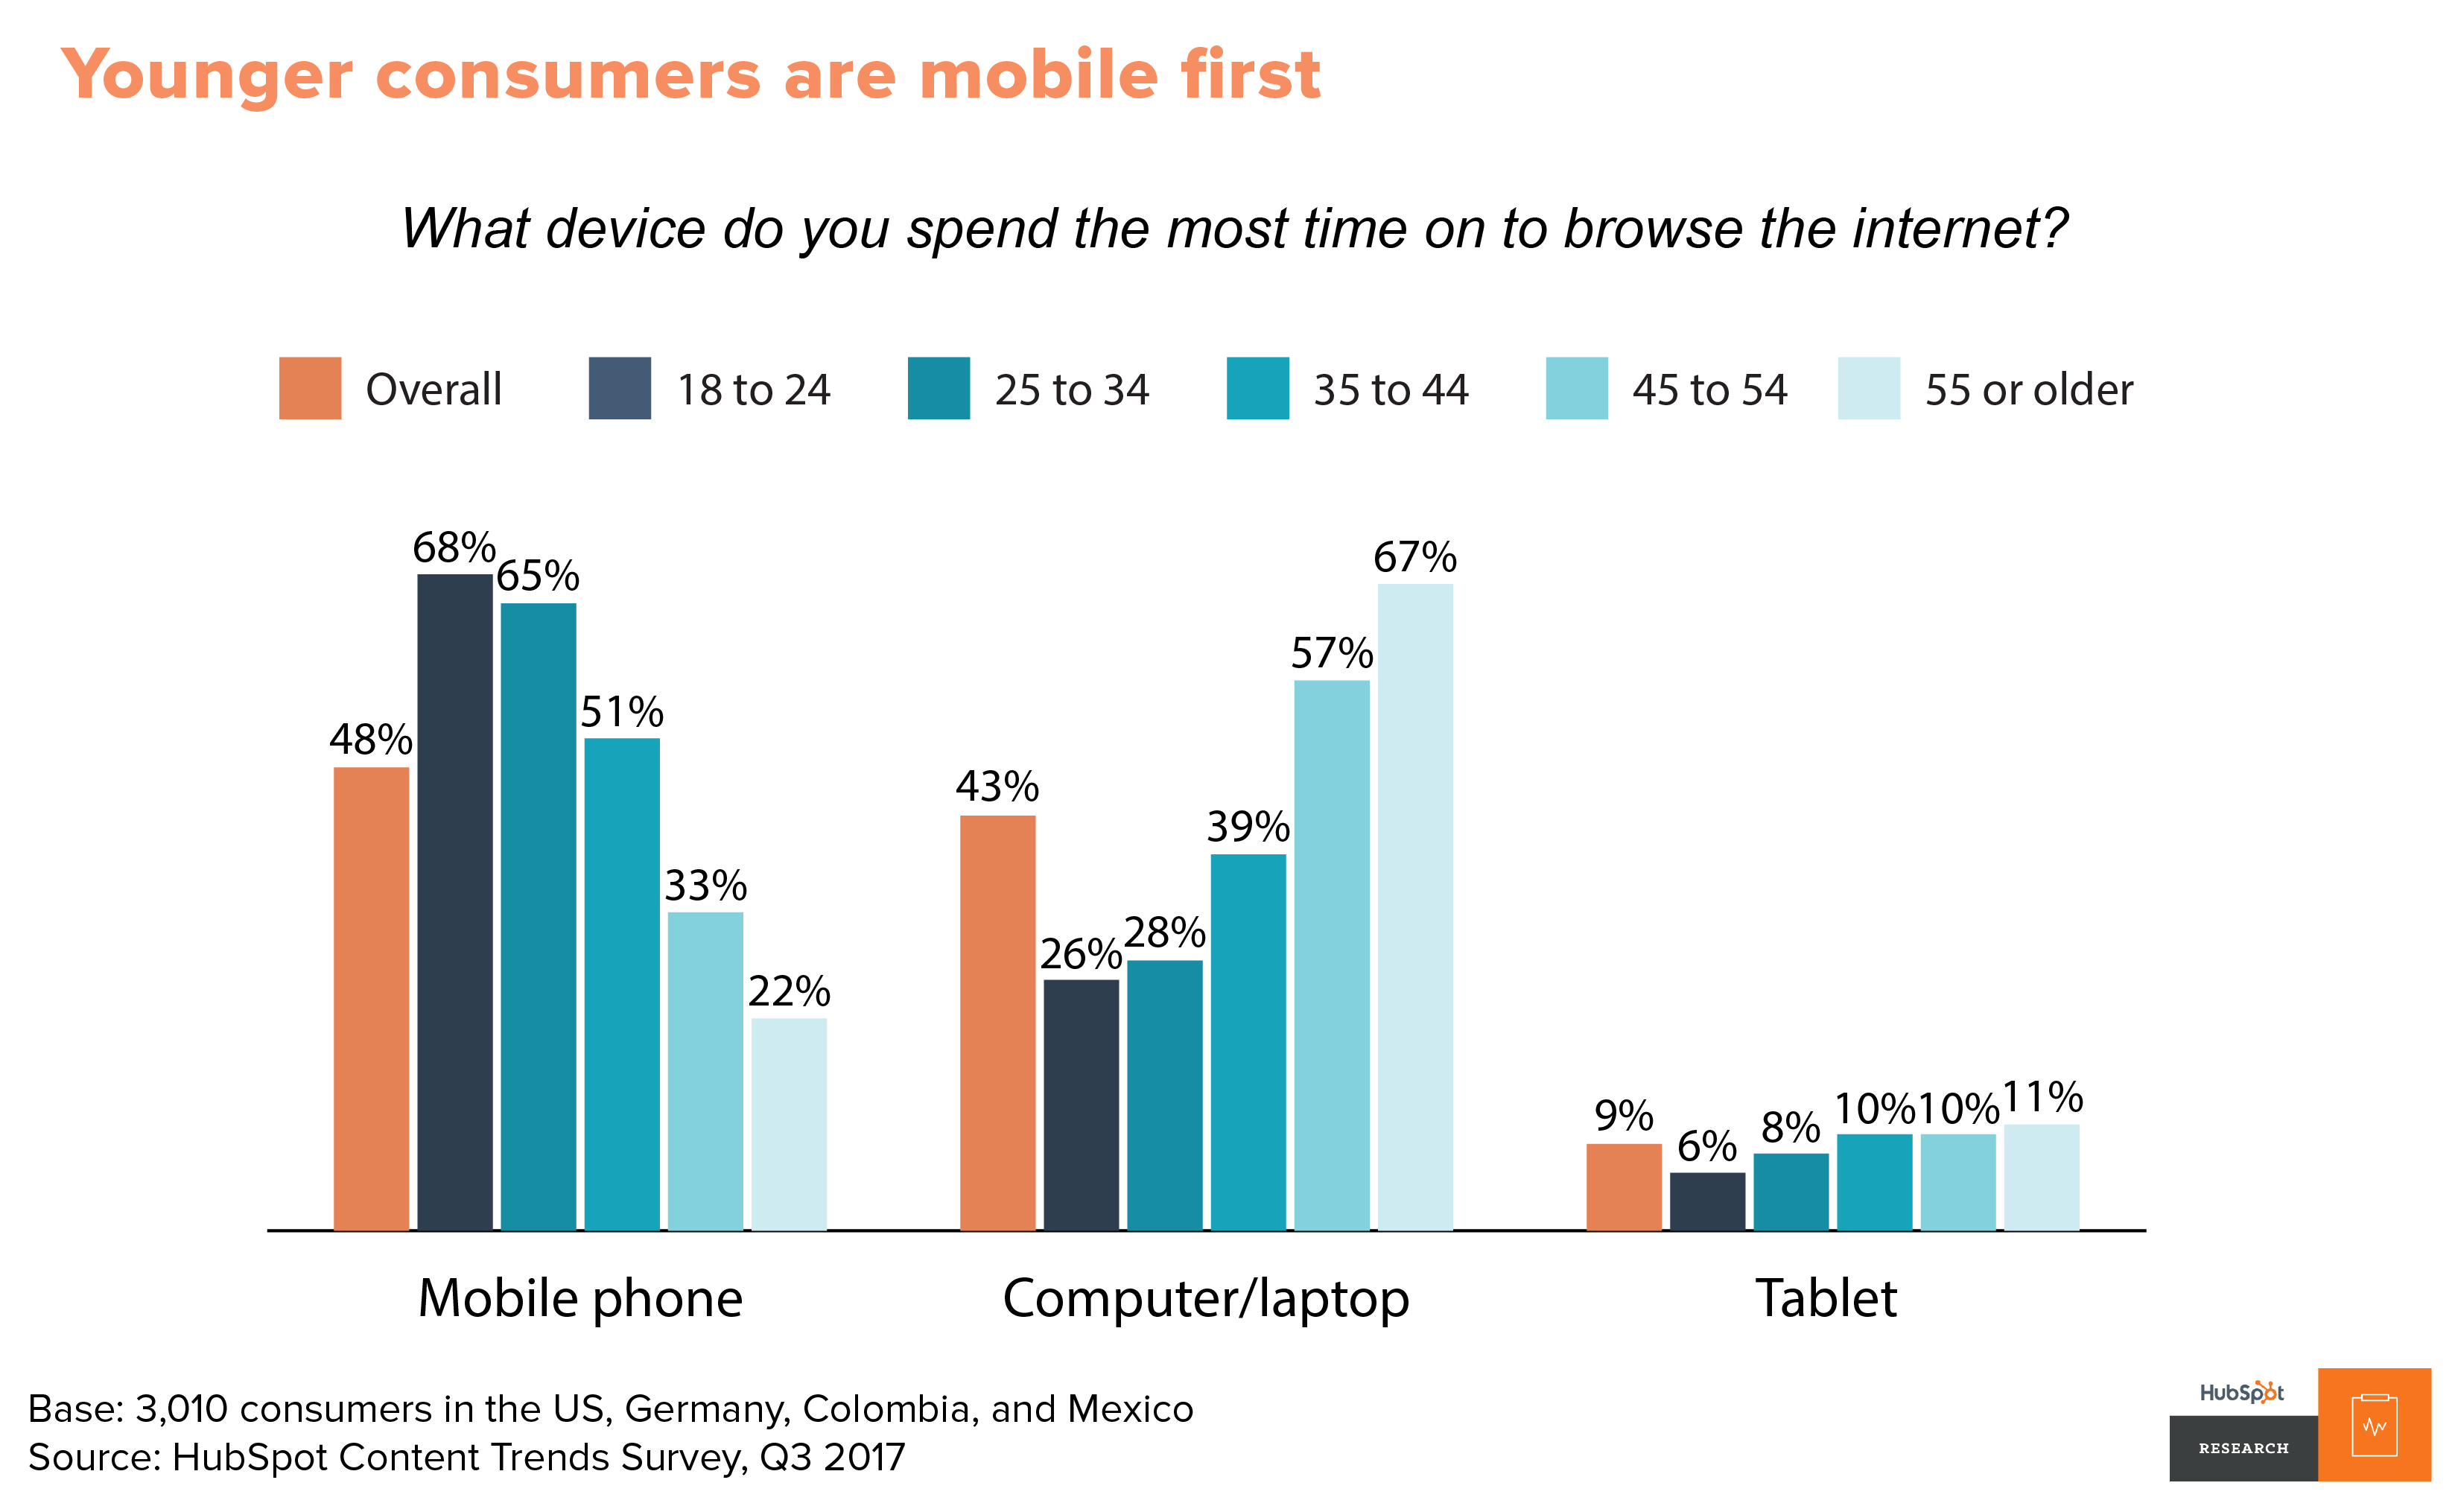 Younger consumers are mobile first